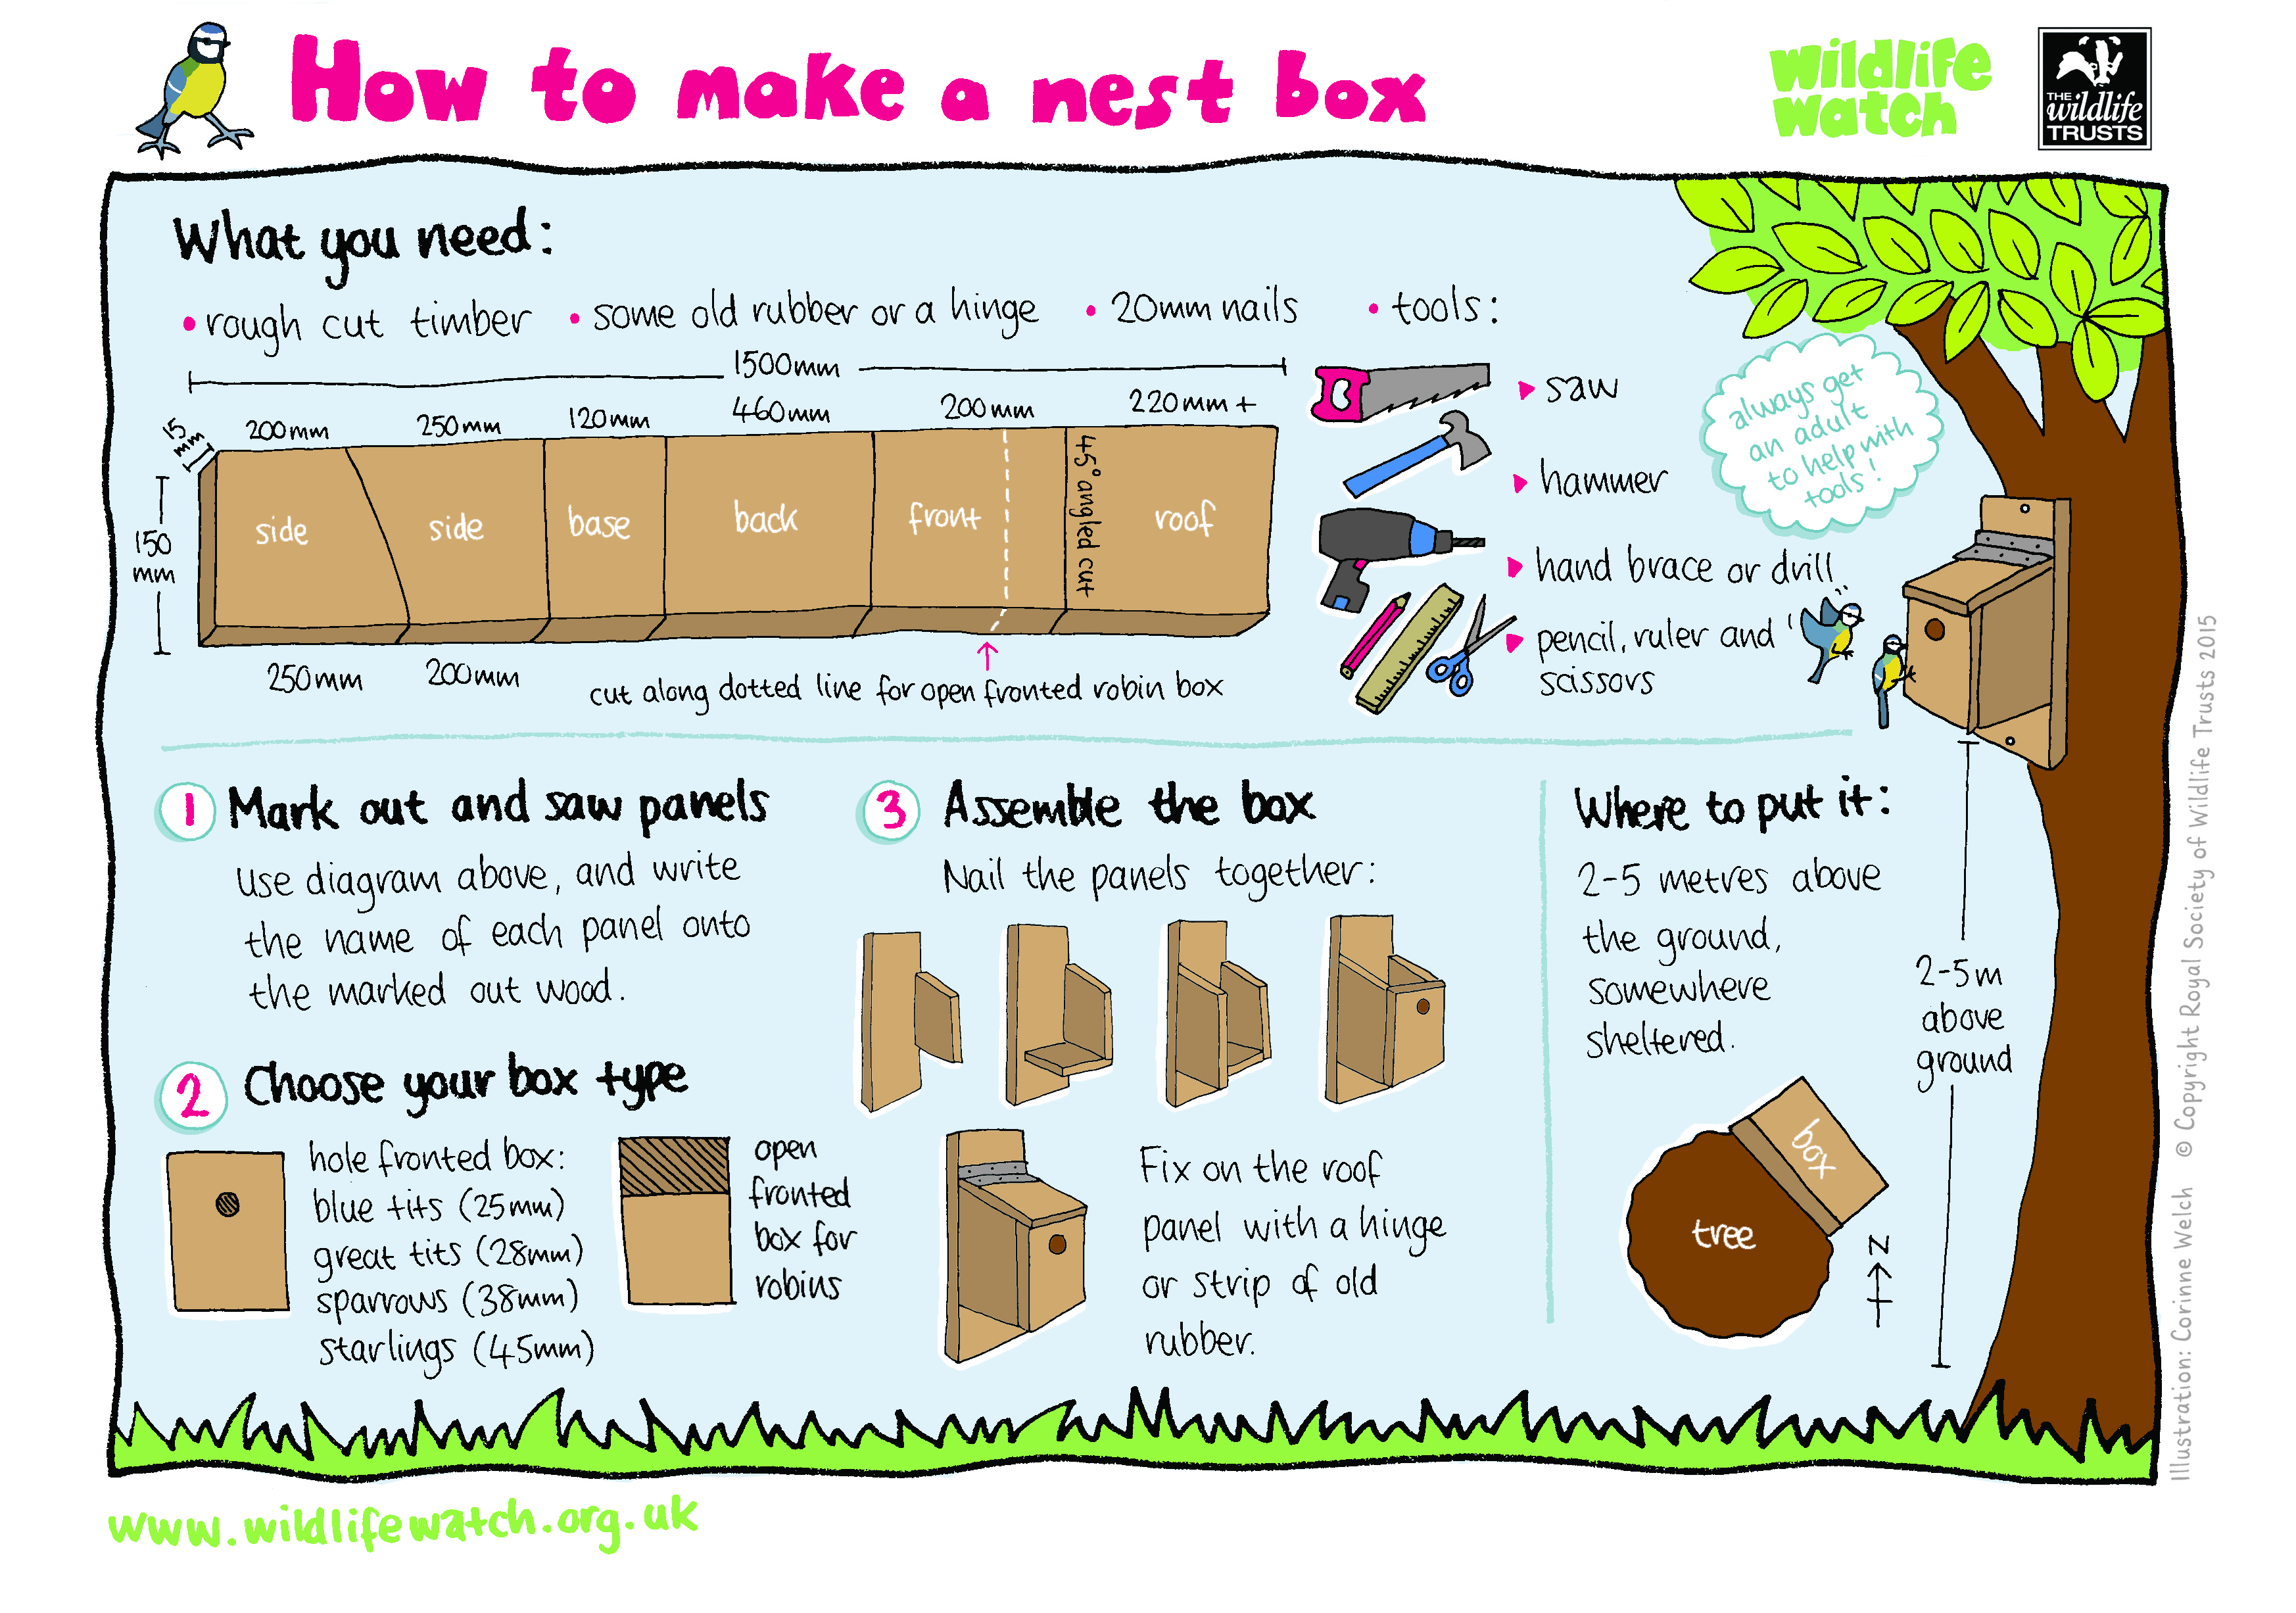 How to help wildlife surrey wildlife trust for How to build box steps